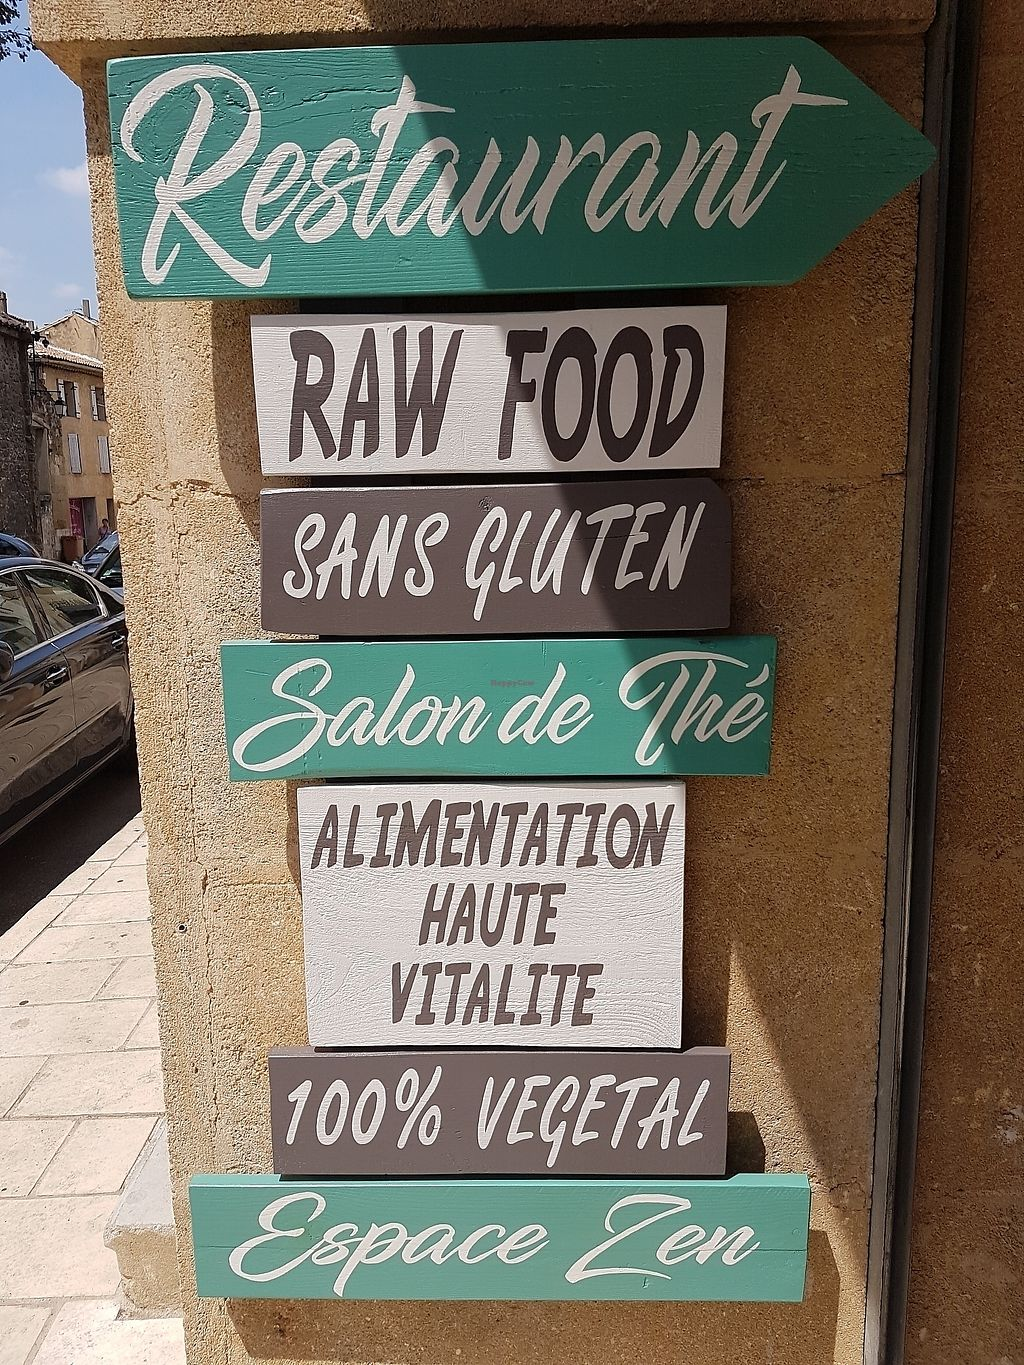 "Photo of Tendance Crue  by <a href=""/members/profile/ThierryBlanchetonV"">ThierryBlanchetonV</a> <br/>Vegan raw restaurant <br/> July 22, 2017  - <a href='/contact/abuse/image/96848/283370'>Report</a>"